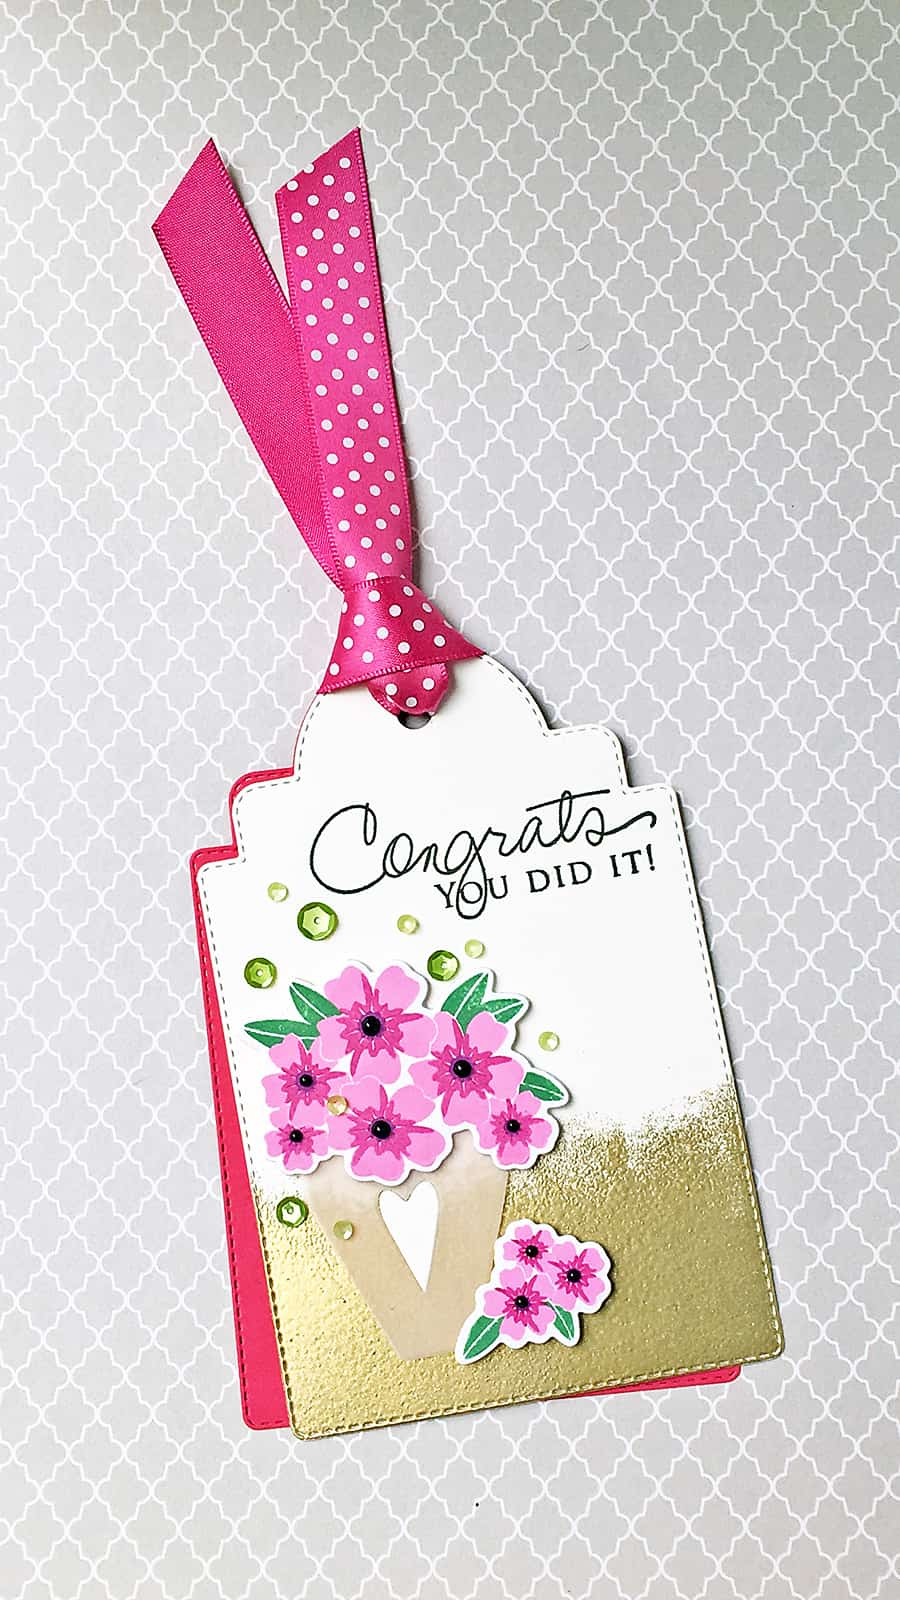 Floral Congrats Tag - Stamped images from Papertrey Ink, altered coffee mug die from Simon Says Stamp. To create the gold finish, swipe your watermark ink across the bottom of the tag, dip in gold embossing powder and heat!